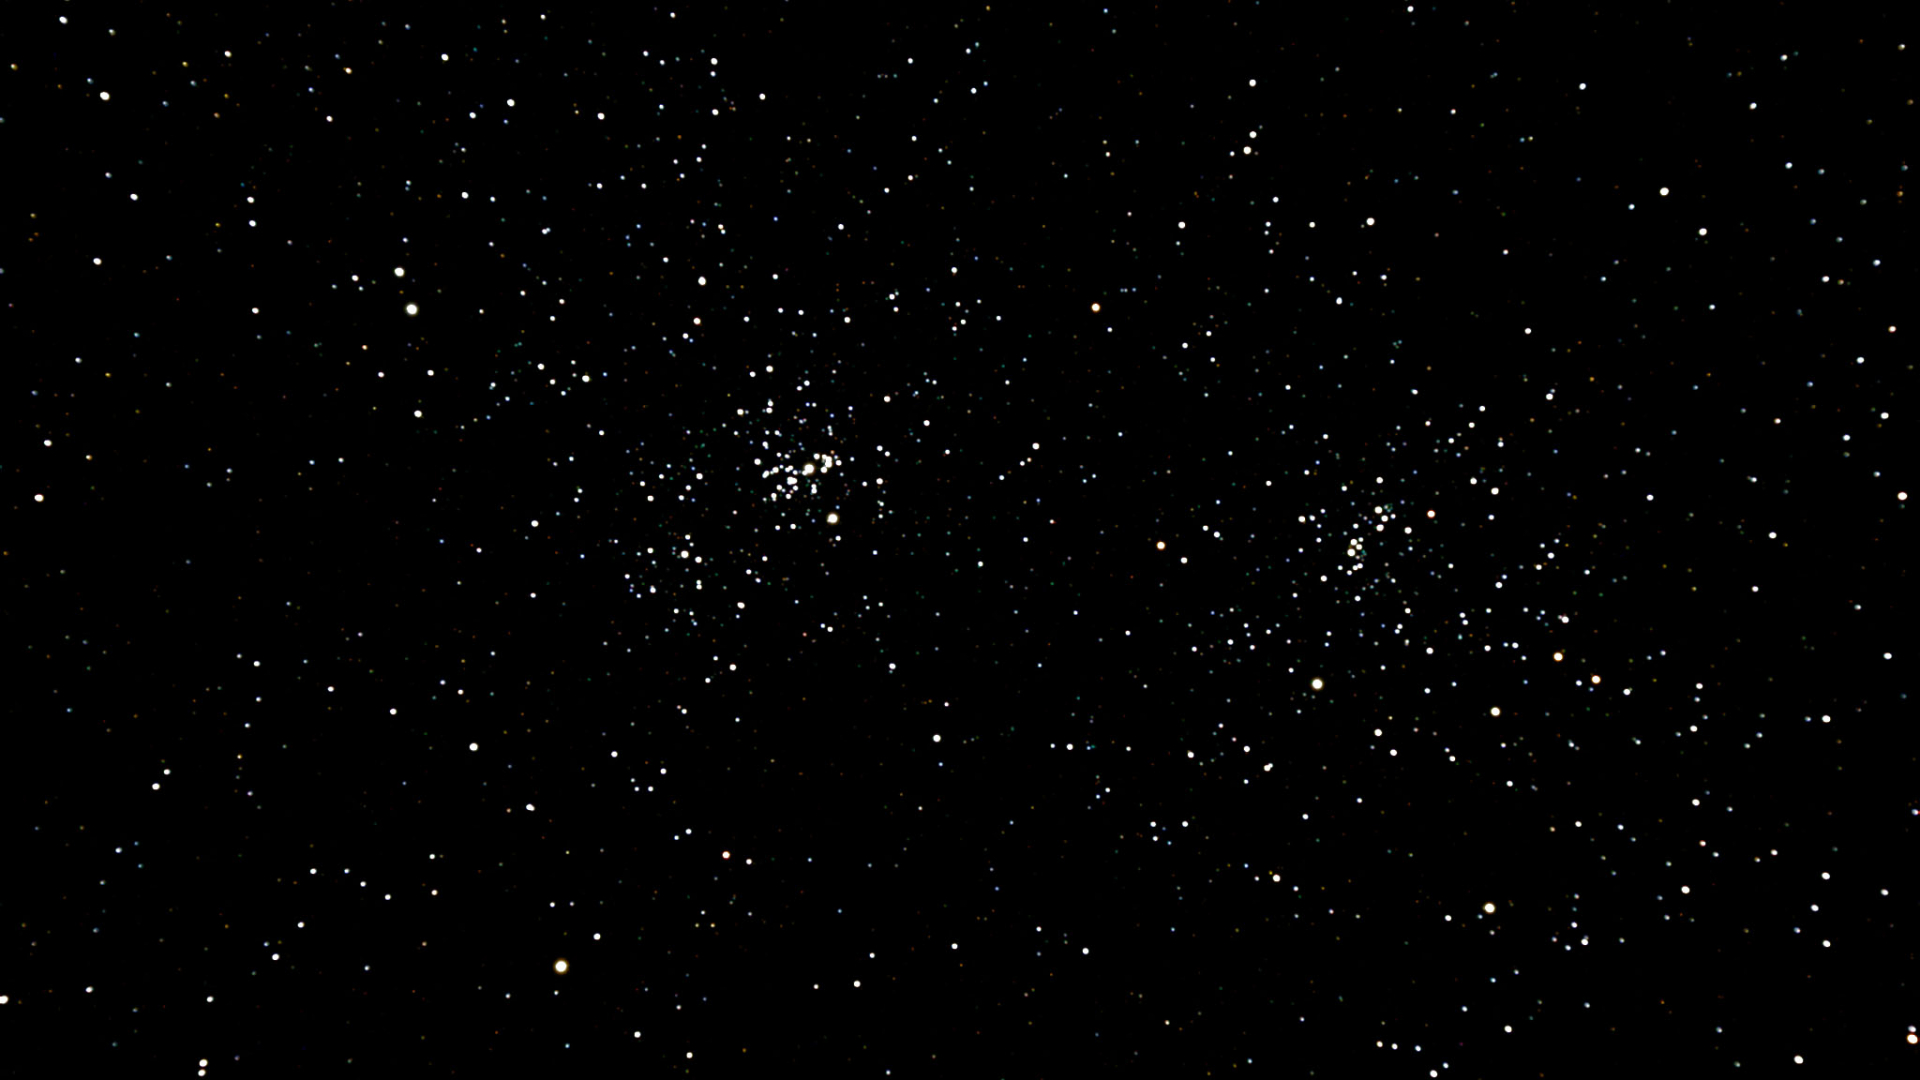 Free Download Dark Sky With Stars Wallpaper Images Pictures Becuo